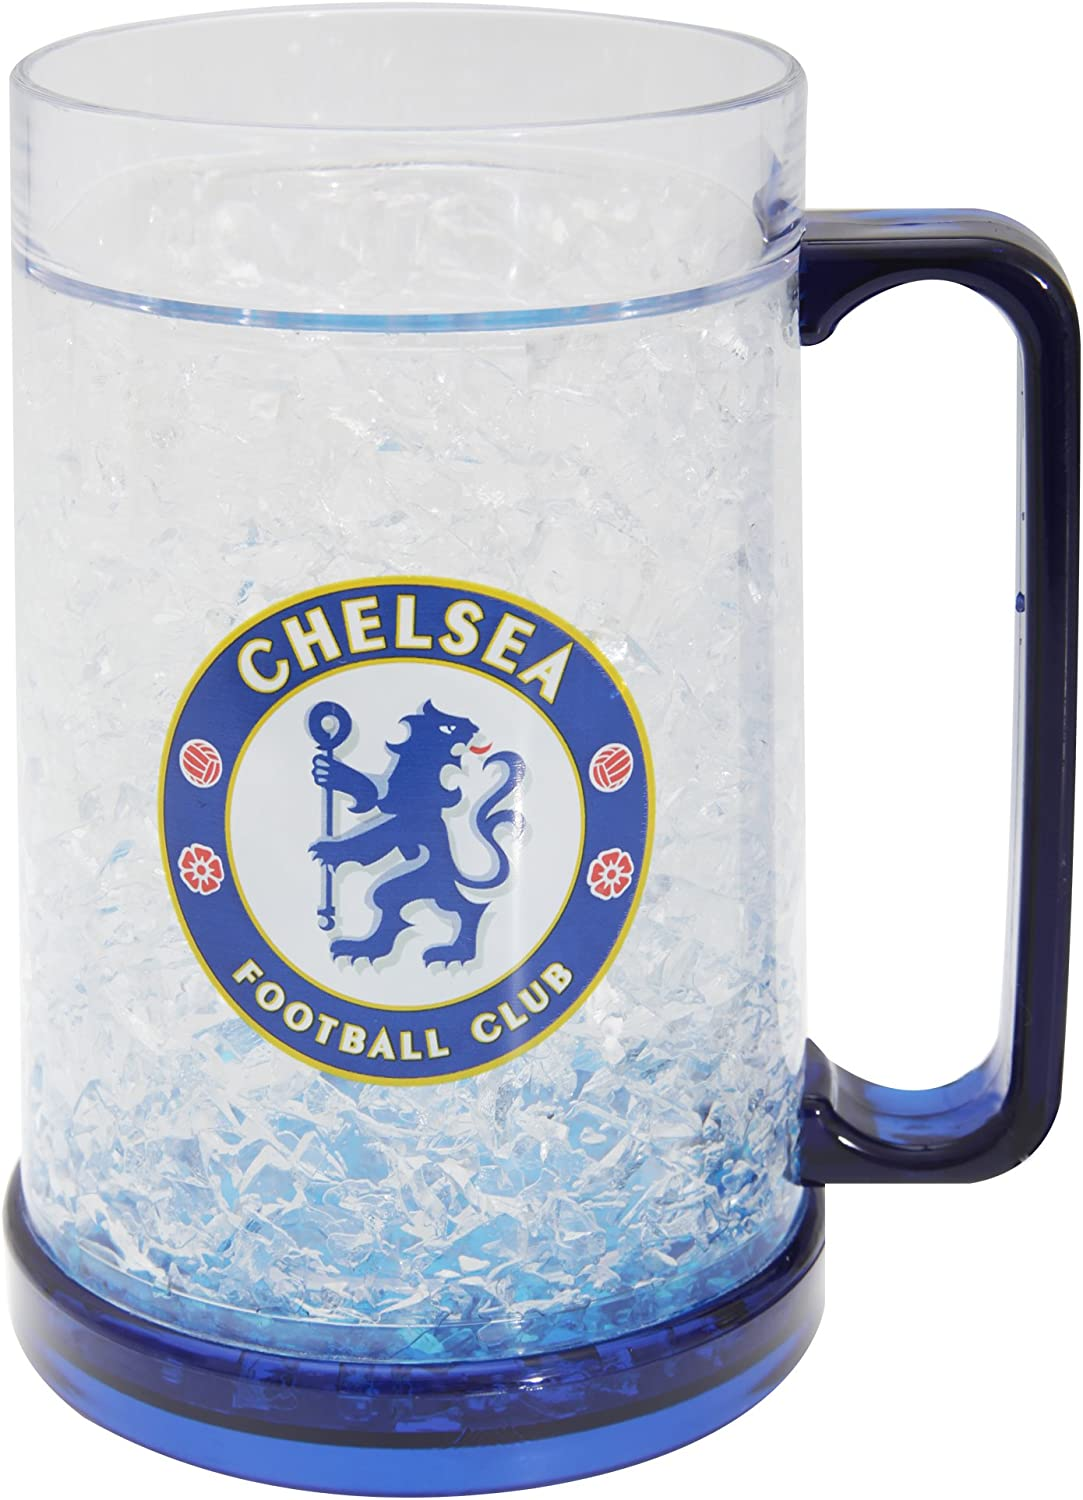 Chelsea FC Official Football Crest Freezer Mug (One Size) (Clear/Blue)